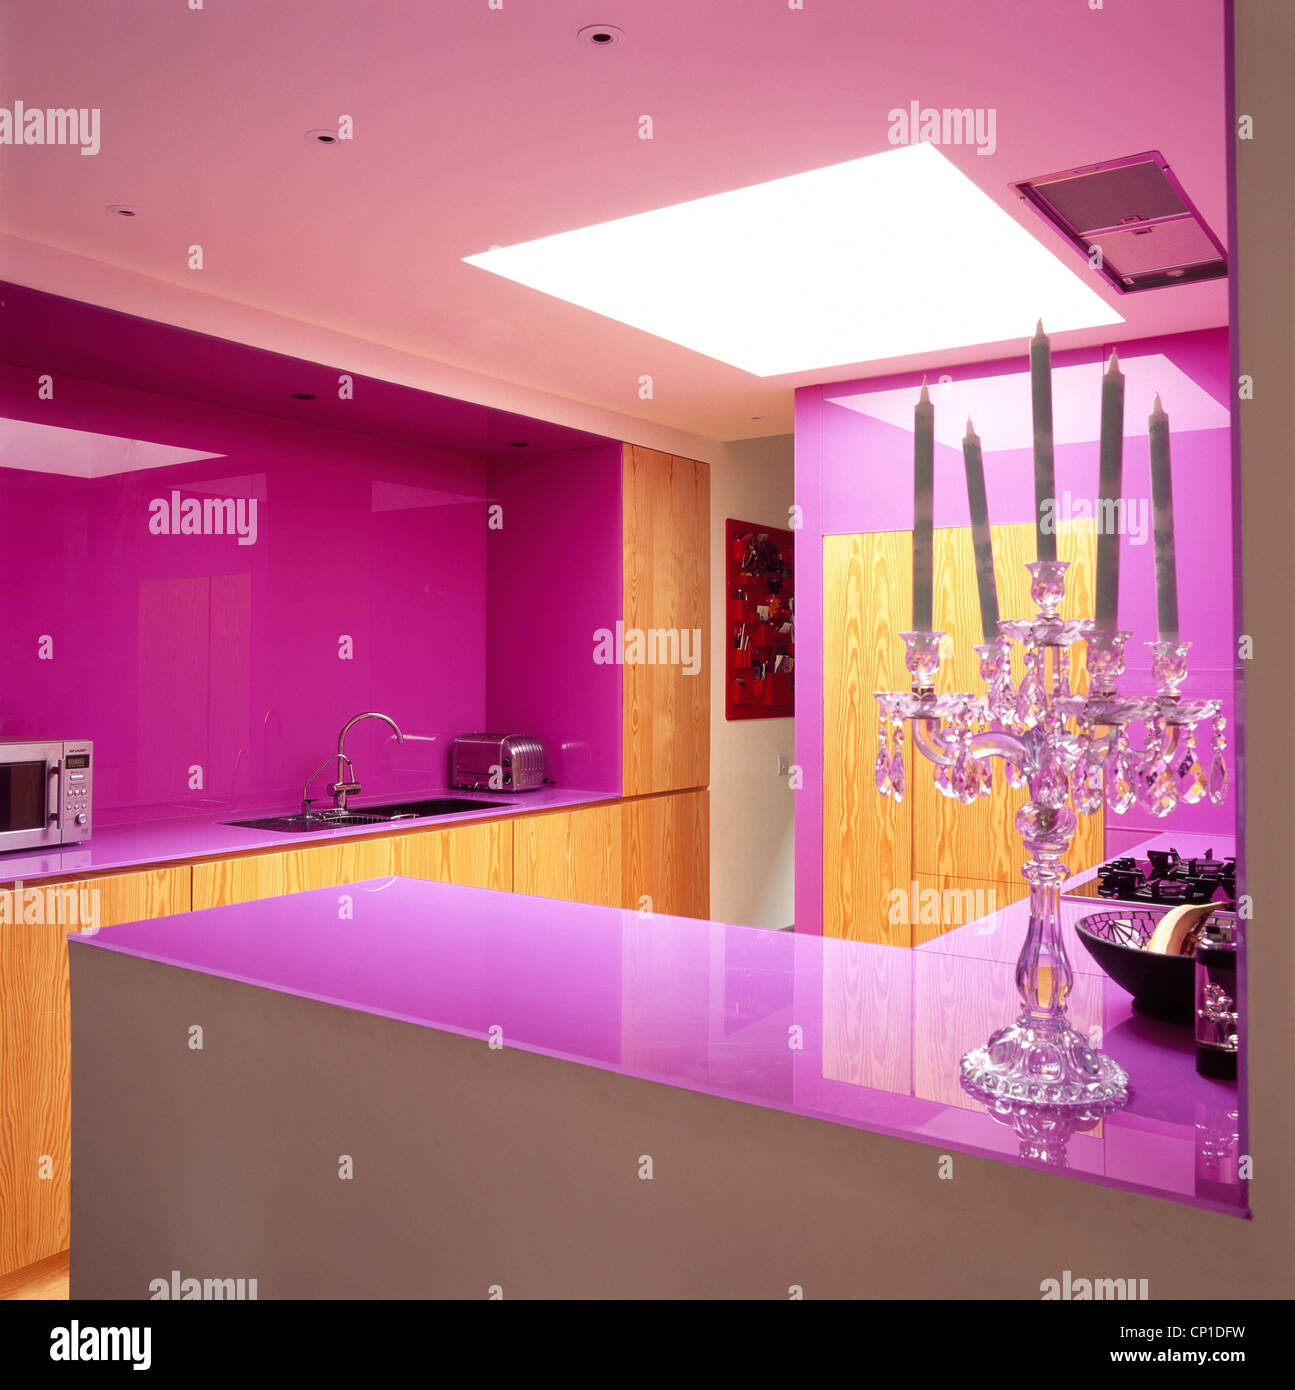 A modern pink kitchen with wooden units and purple work tops with a glass candelabra holder in the foreground. Stock Photo